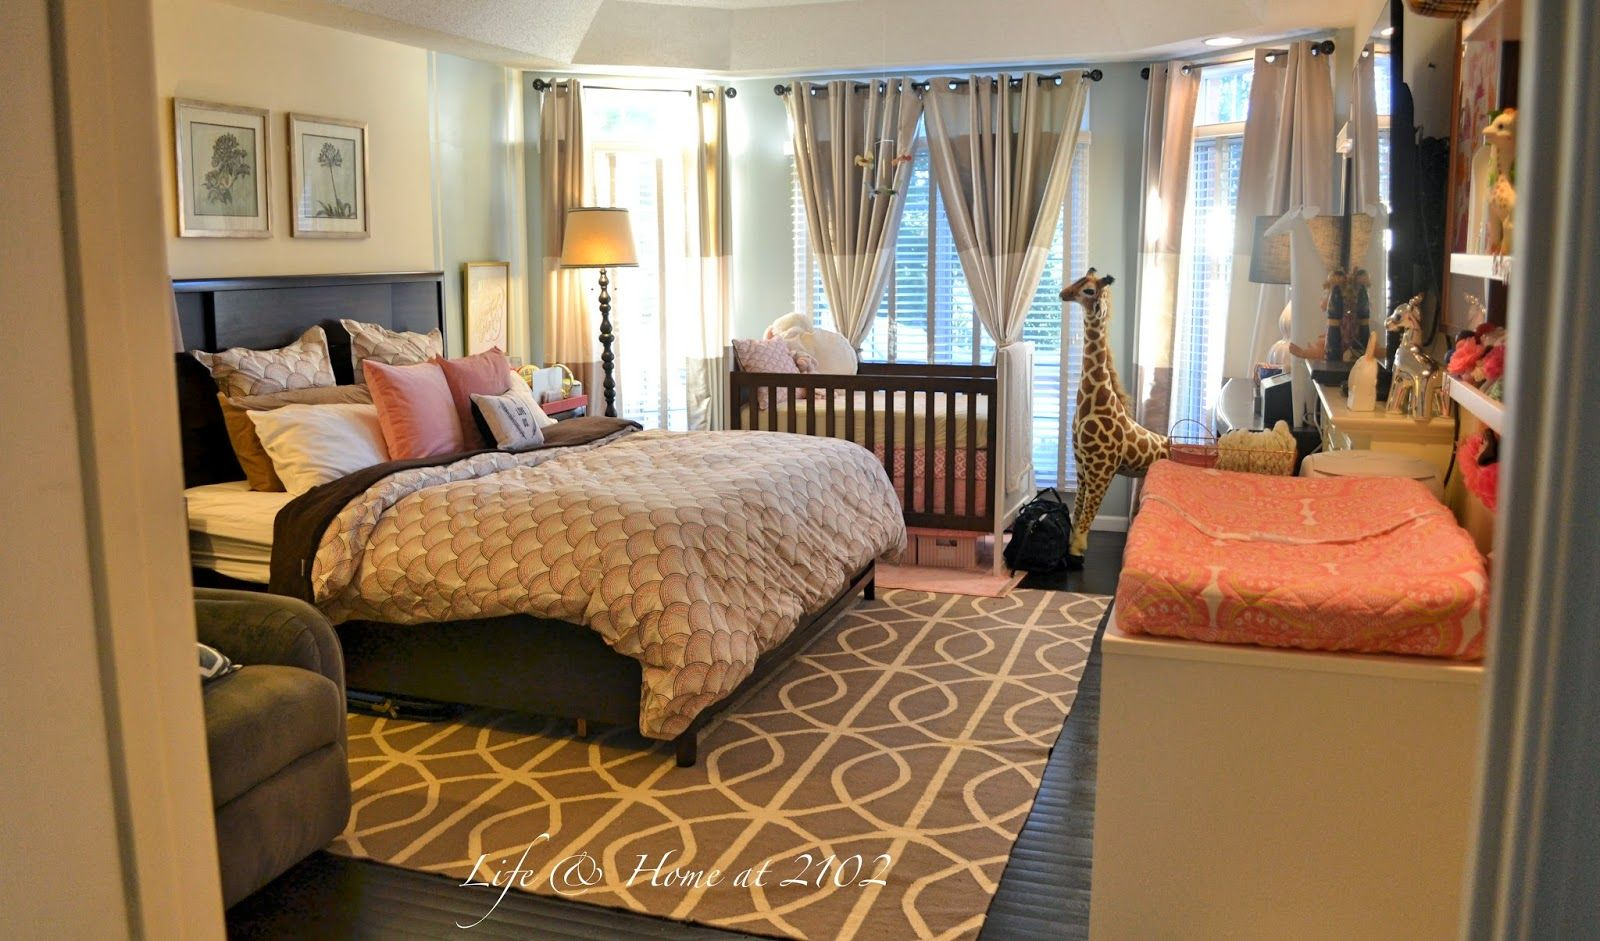 Life home at 2102 master bedroom with nursery reveal for Master bedroom with attached nursery